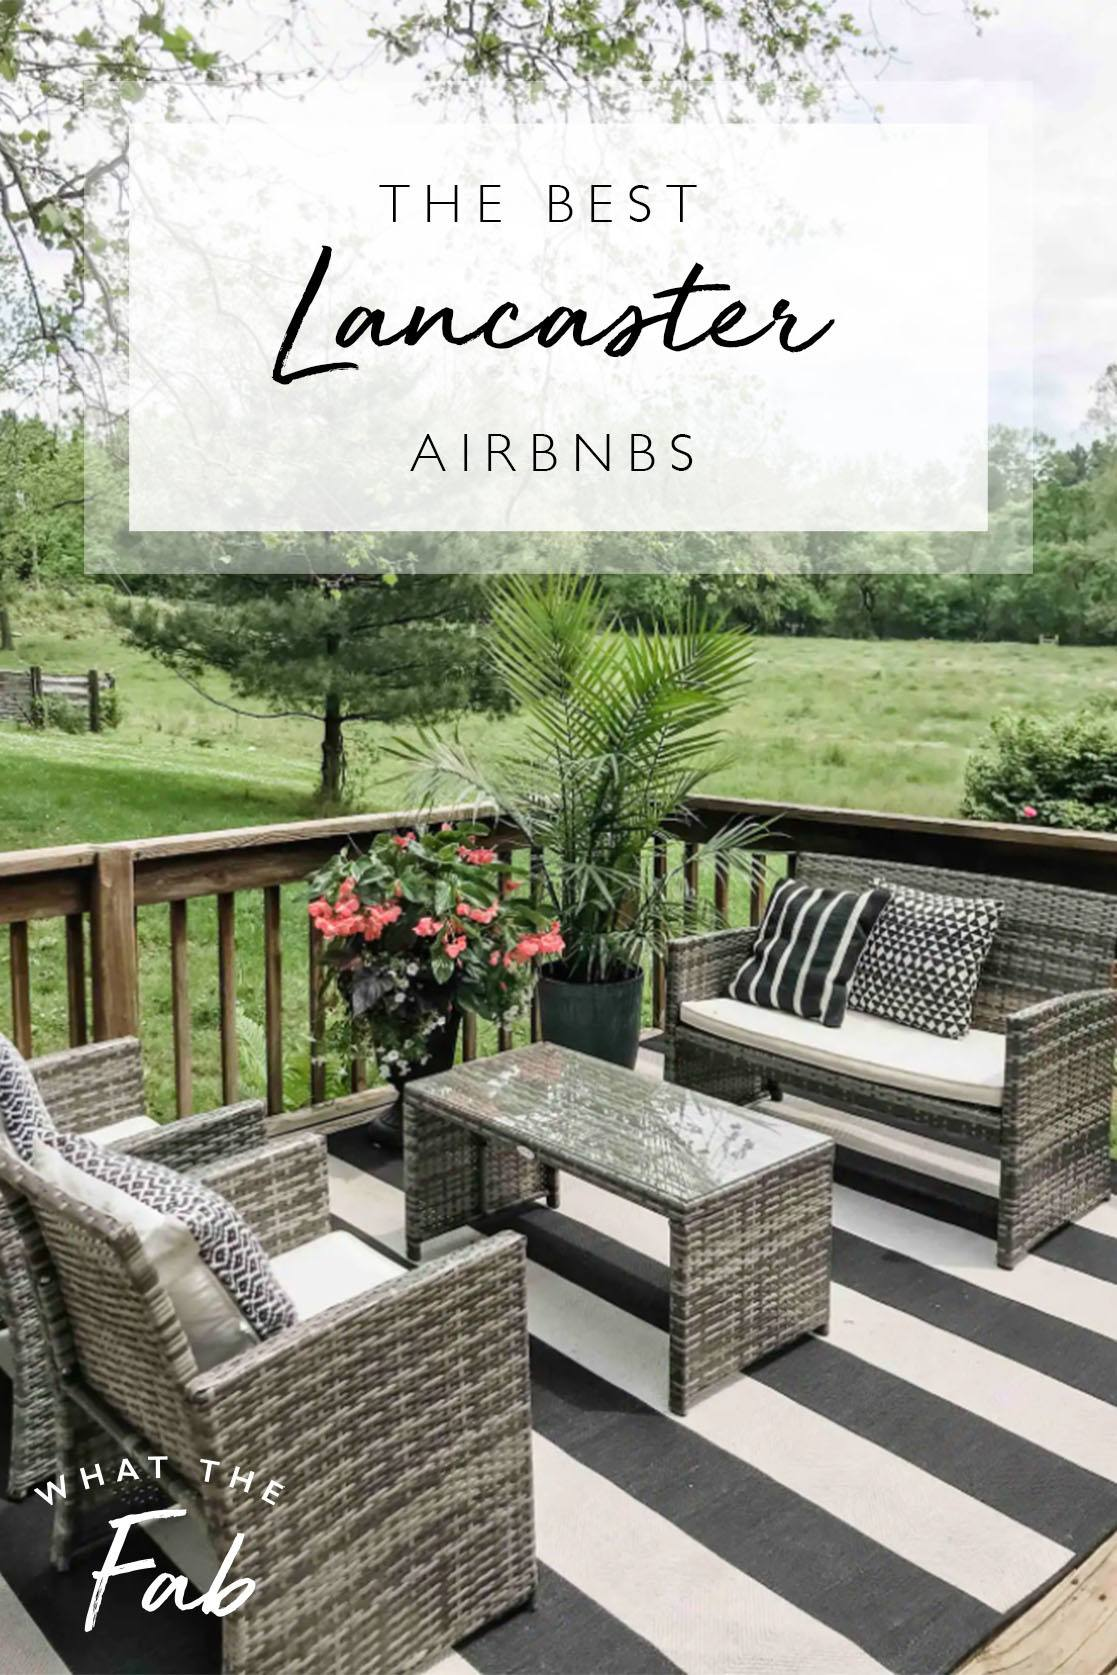 Airbnb Lancaster PA best places to stay, by Travel Blogger What The Fab